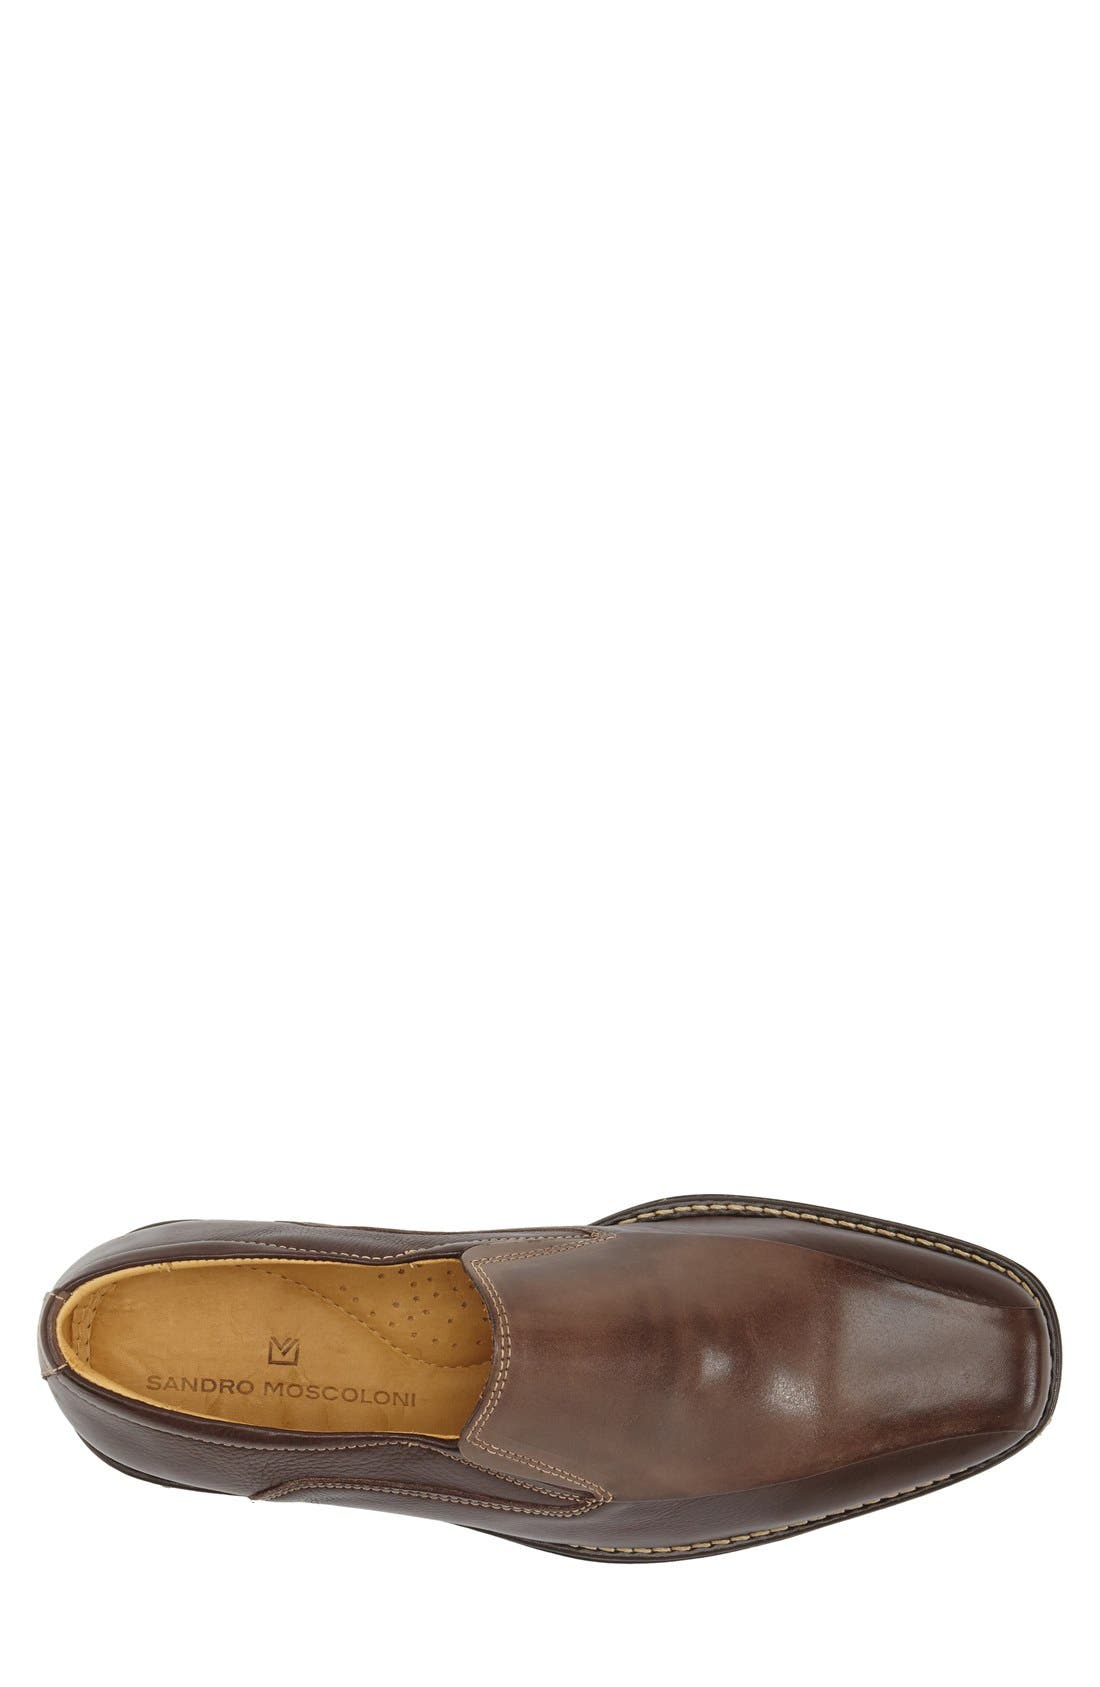 'Jacobs Venetian' Slip-On,                             Alternate thumbnail 3, color,                             Brown/ Brown